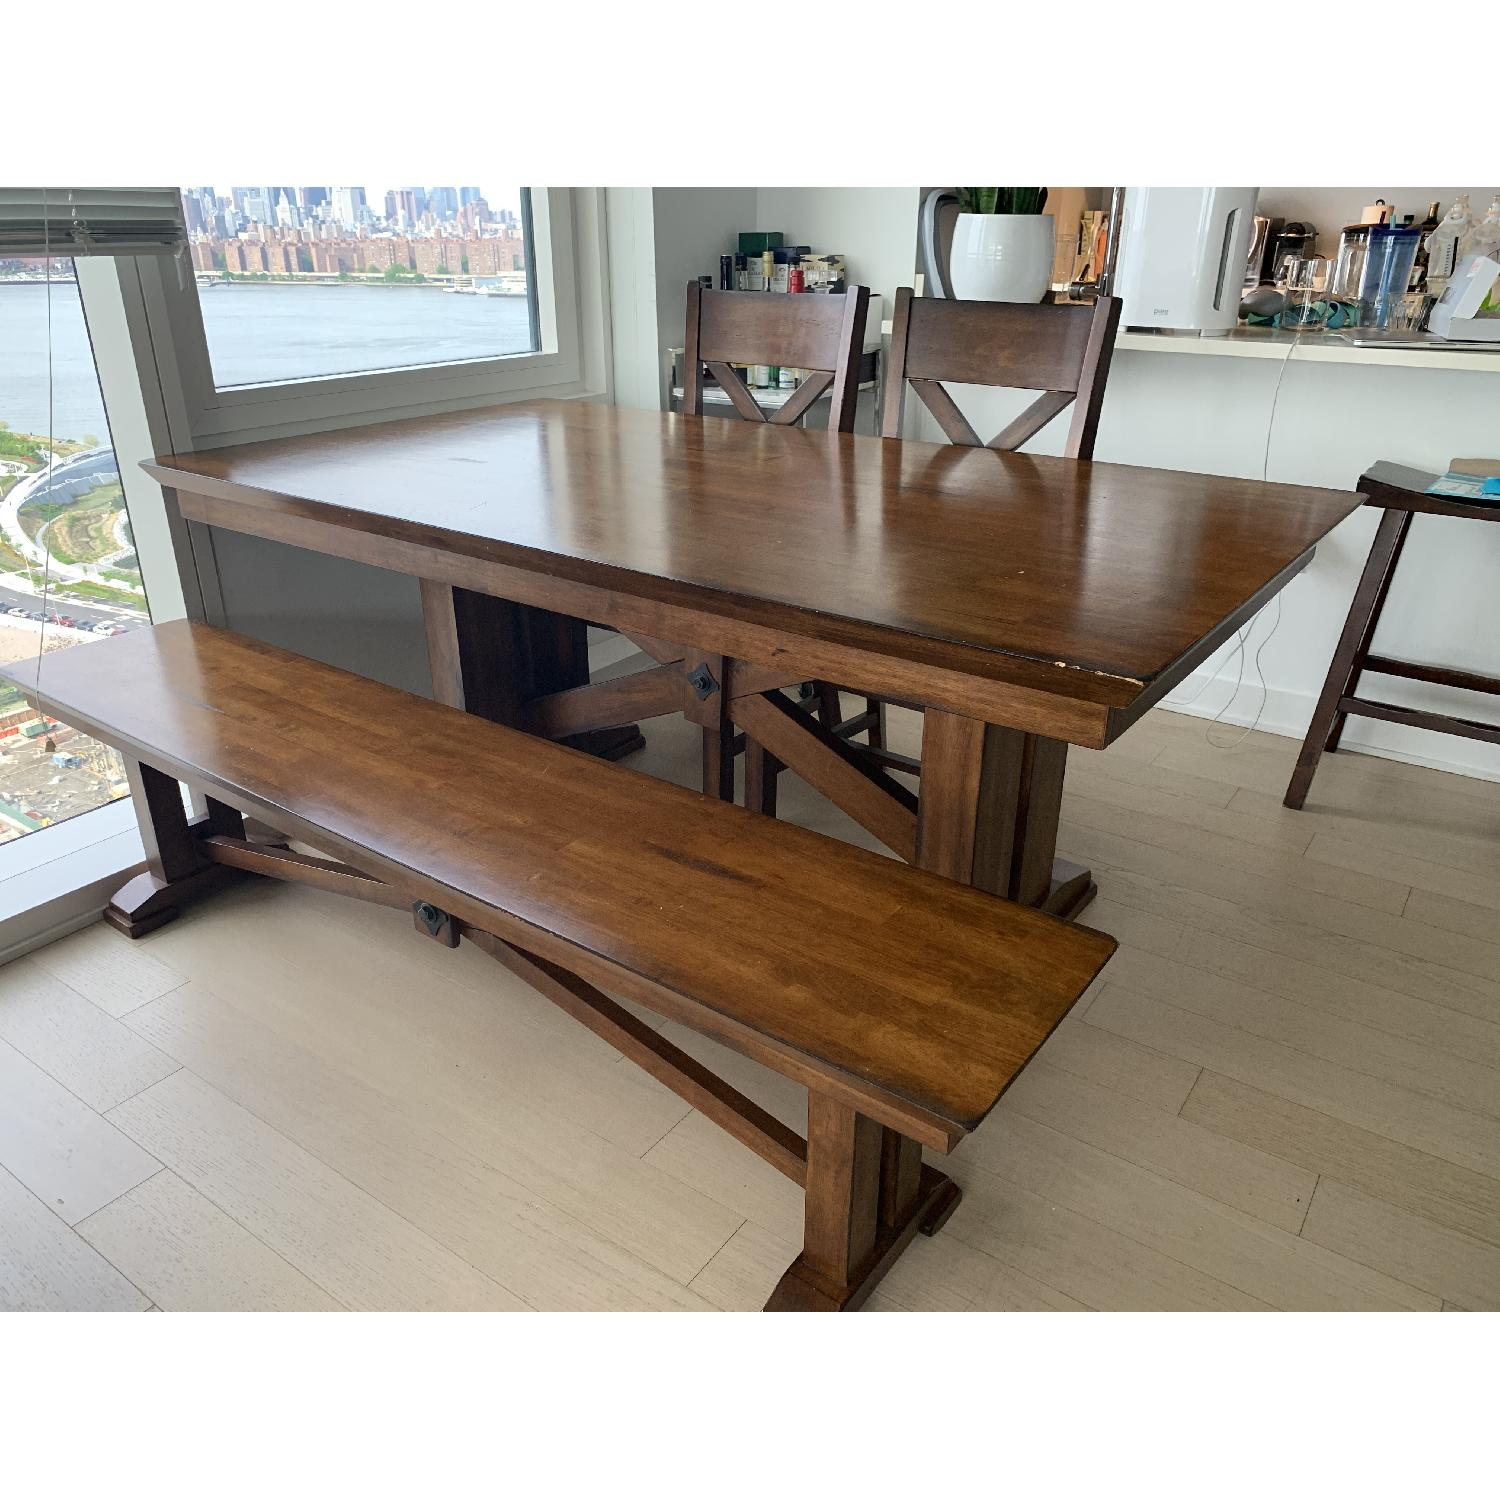 Dining Table World Market: World Market Solid Wood Dining Table W/ 1 Bench + 2